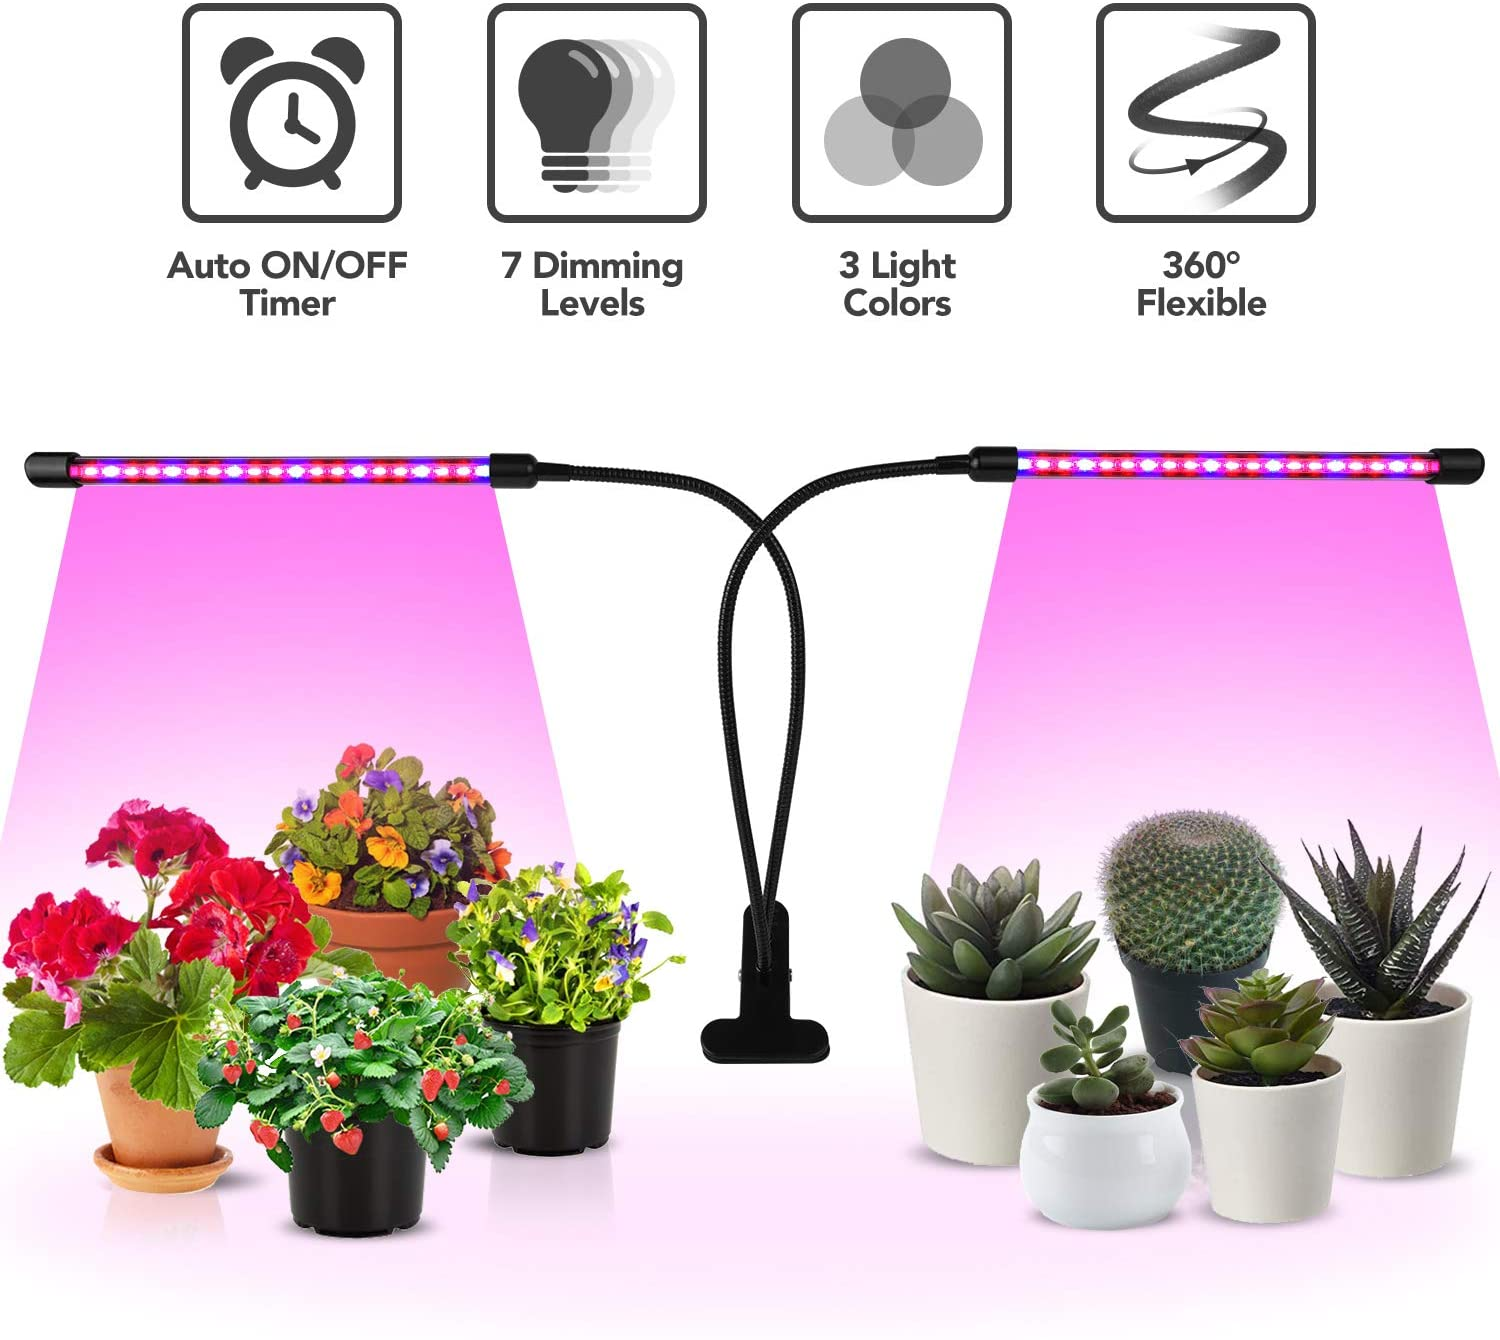 Plant Grow Light USB,27W 54 Leds Three Head Plant Grow Light 5 Levels of Dimming Timing Waterproof LED Plant Growing Lamp for Indoor Plants